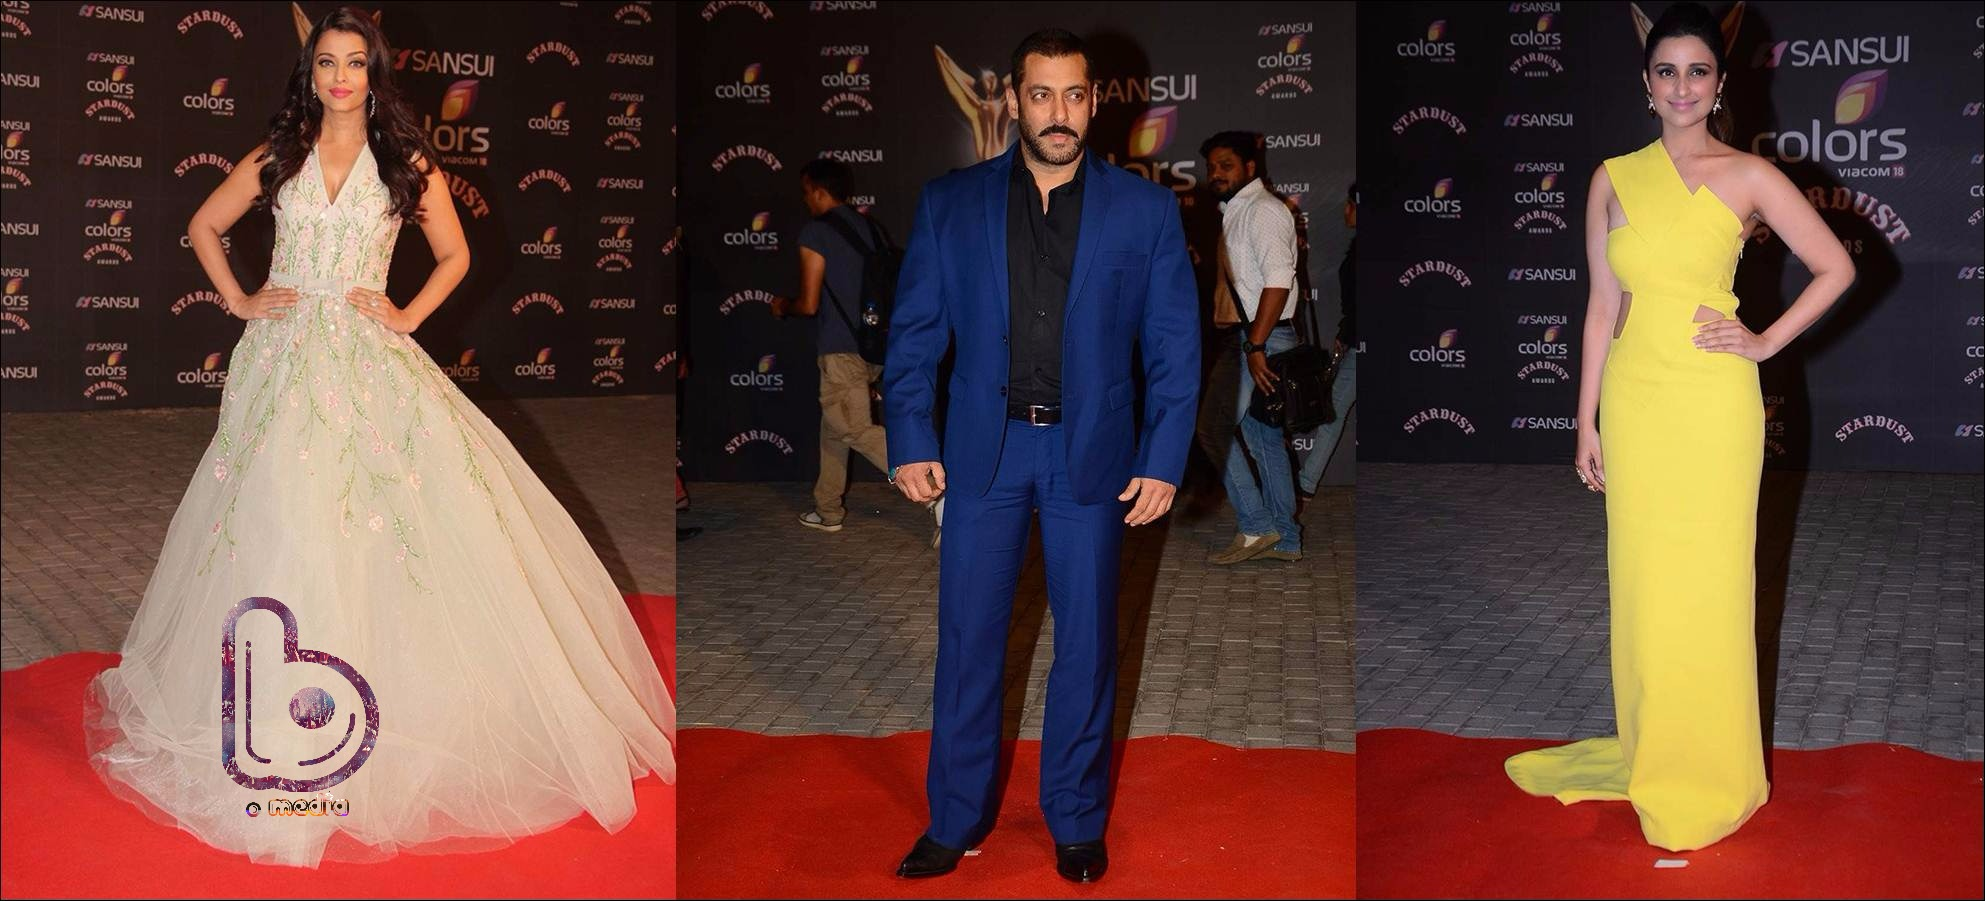 Who wore what at the Stardust Awards 2015 last night? | It's all here!